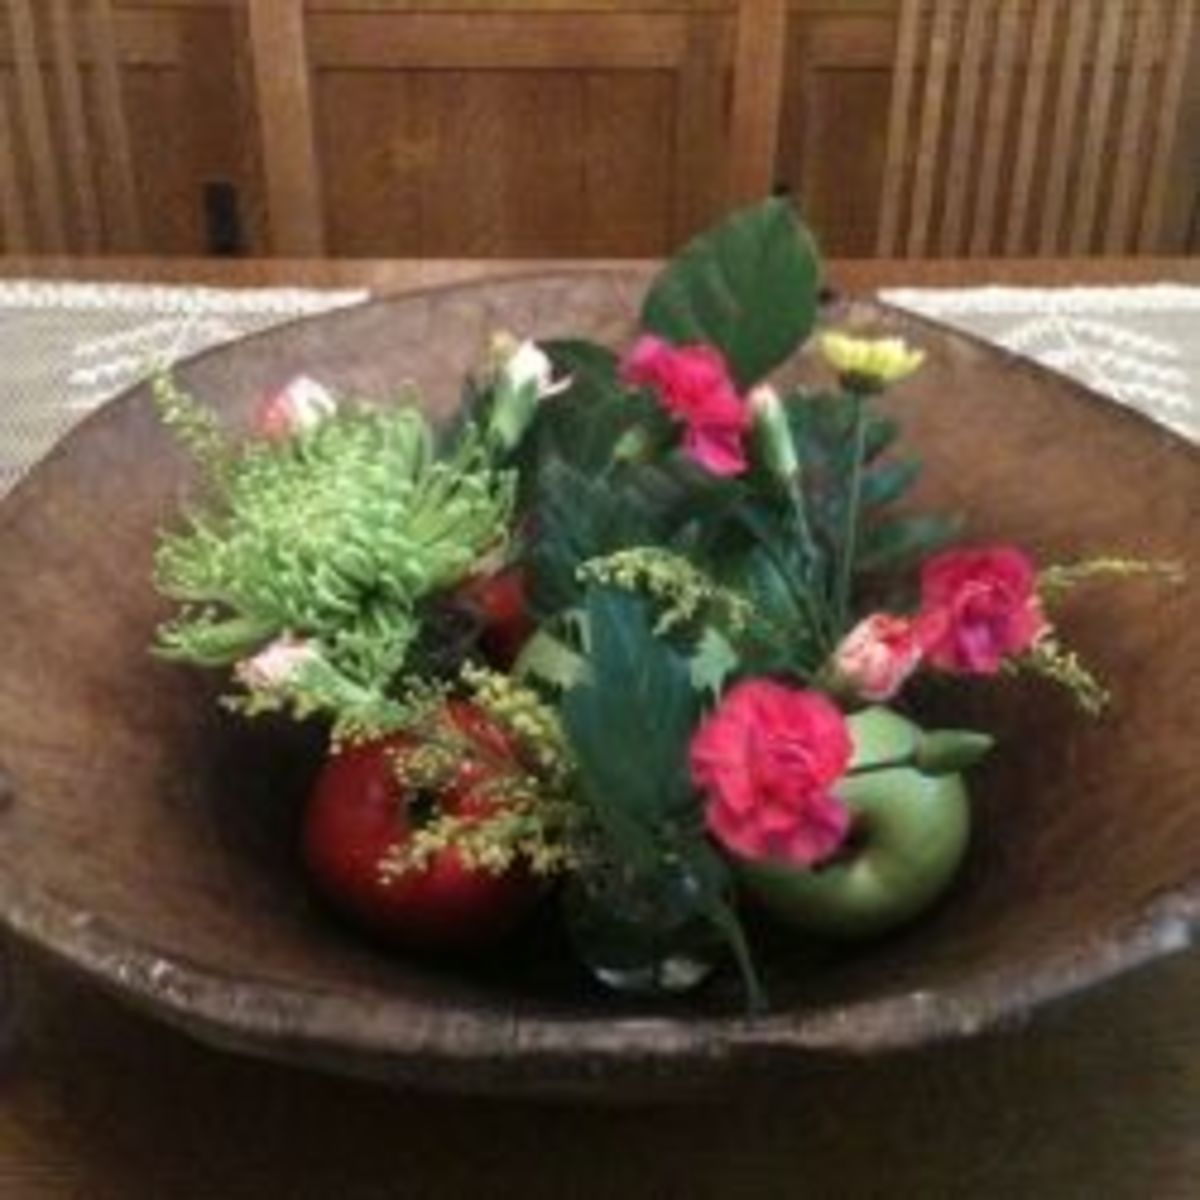 Fresh flowers arranged in a wooden bowl. Photo and floral design by me, Mickie Gee.